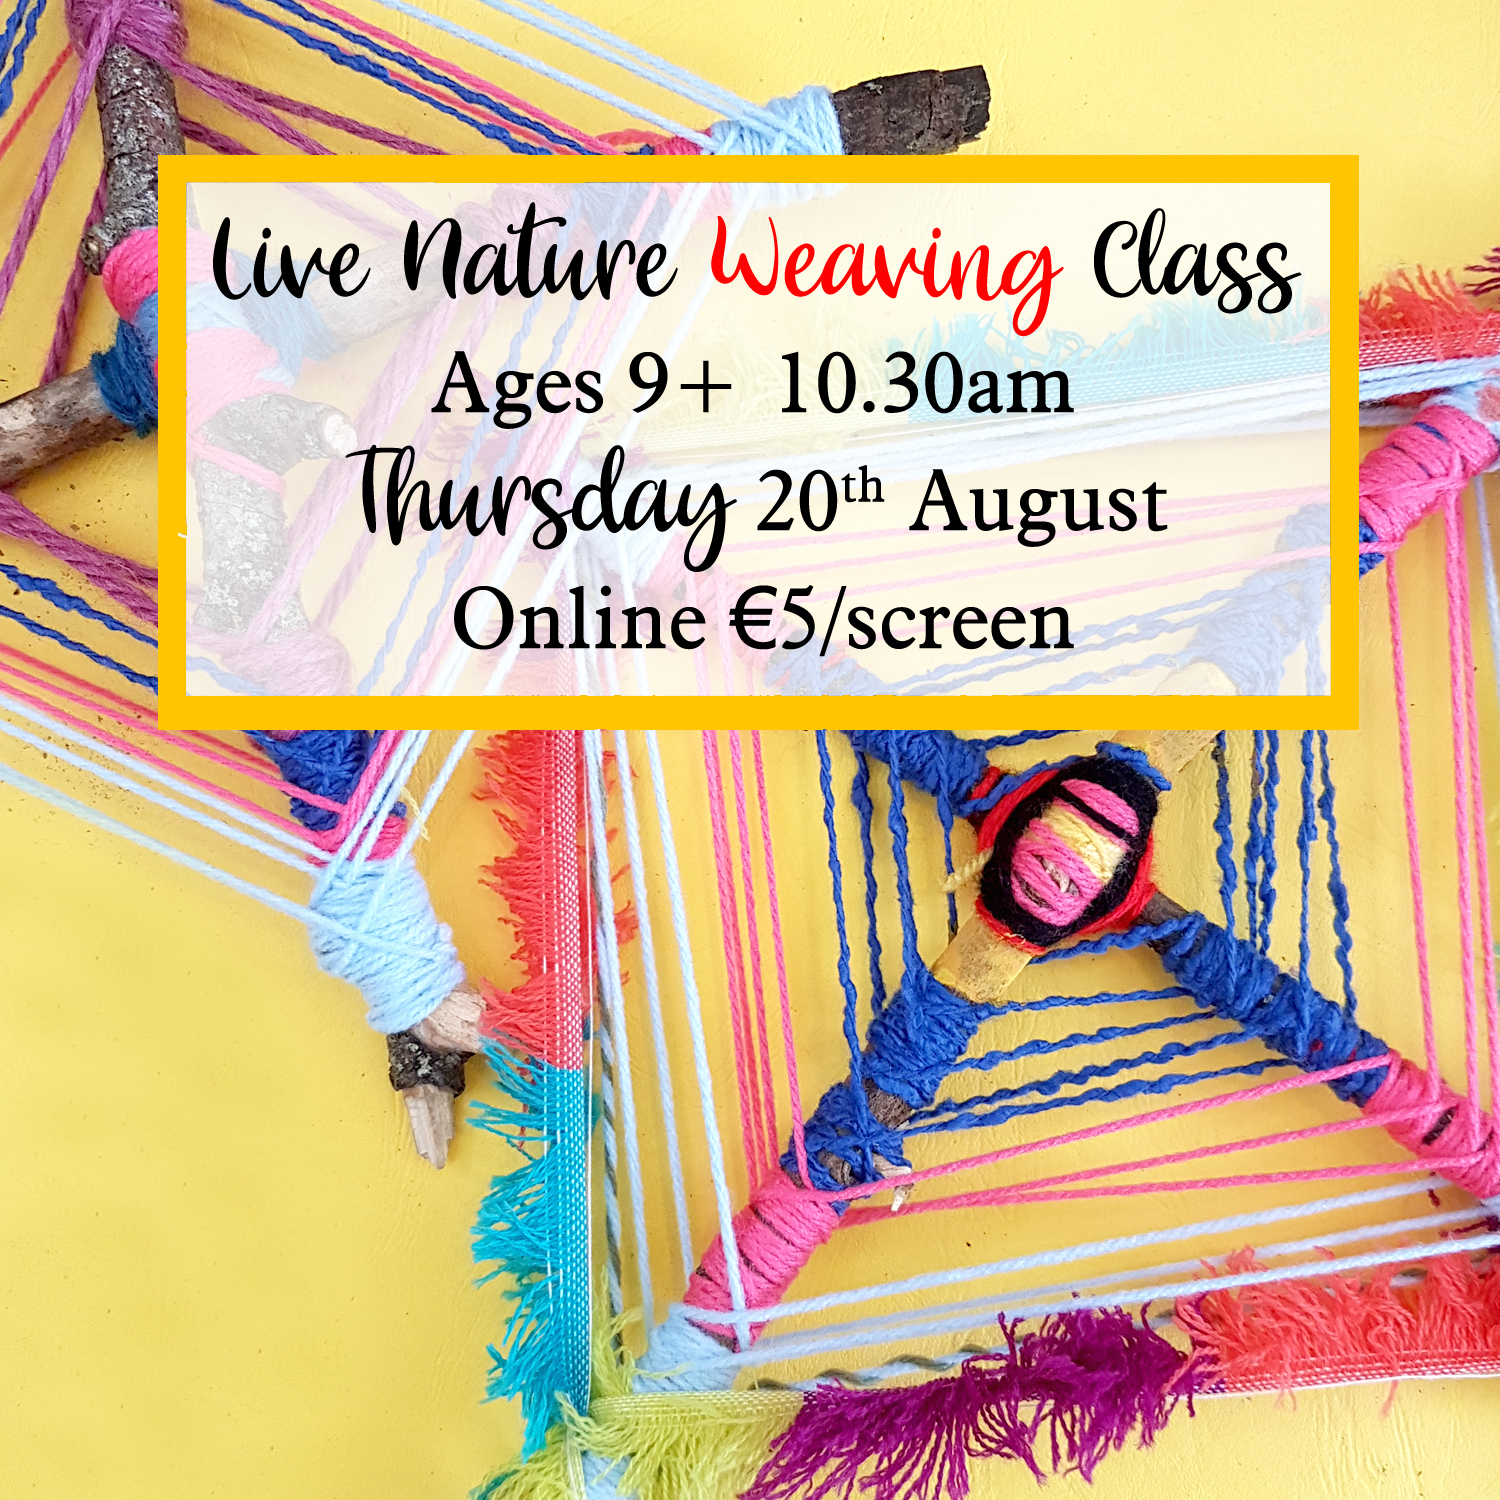 live-nature-weaving-class-with-the-craft-corner